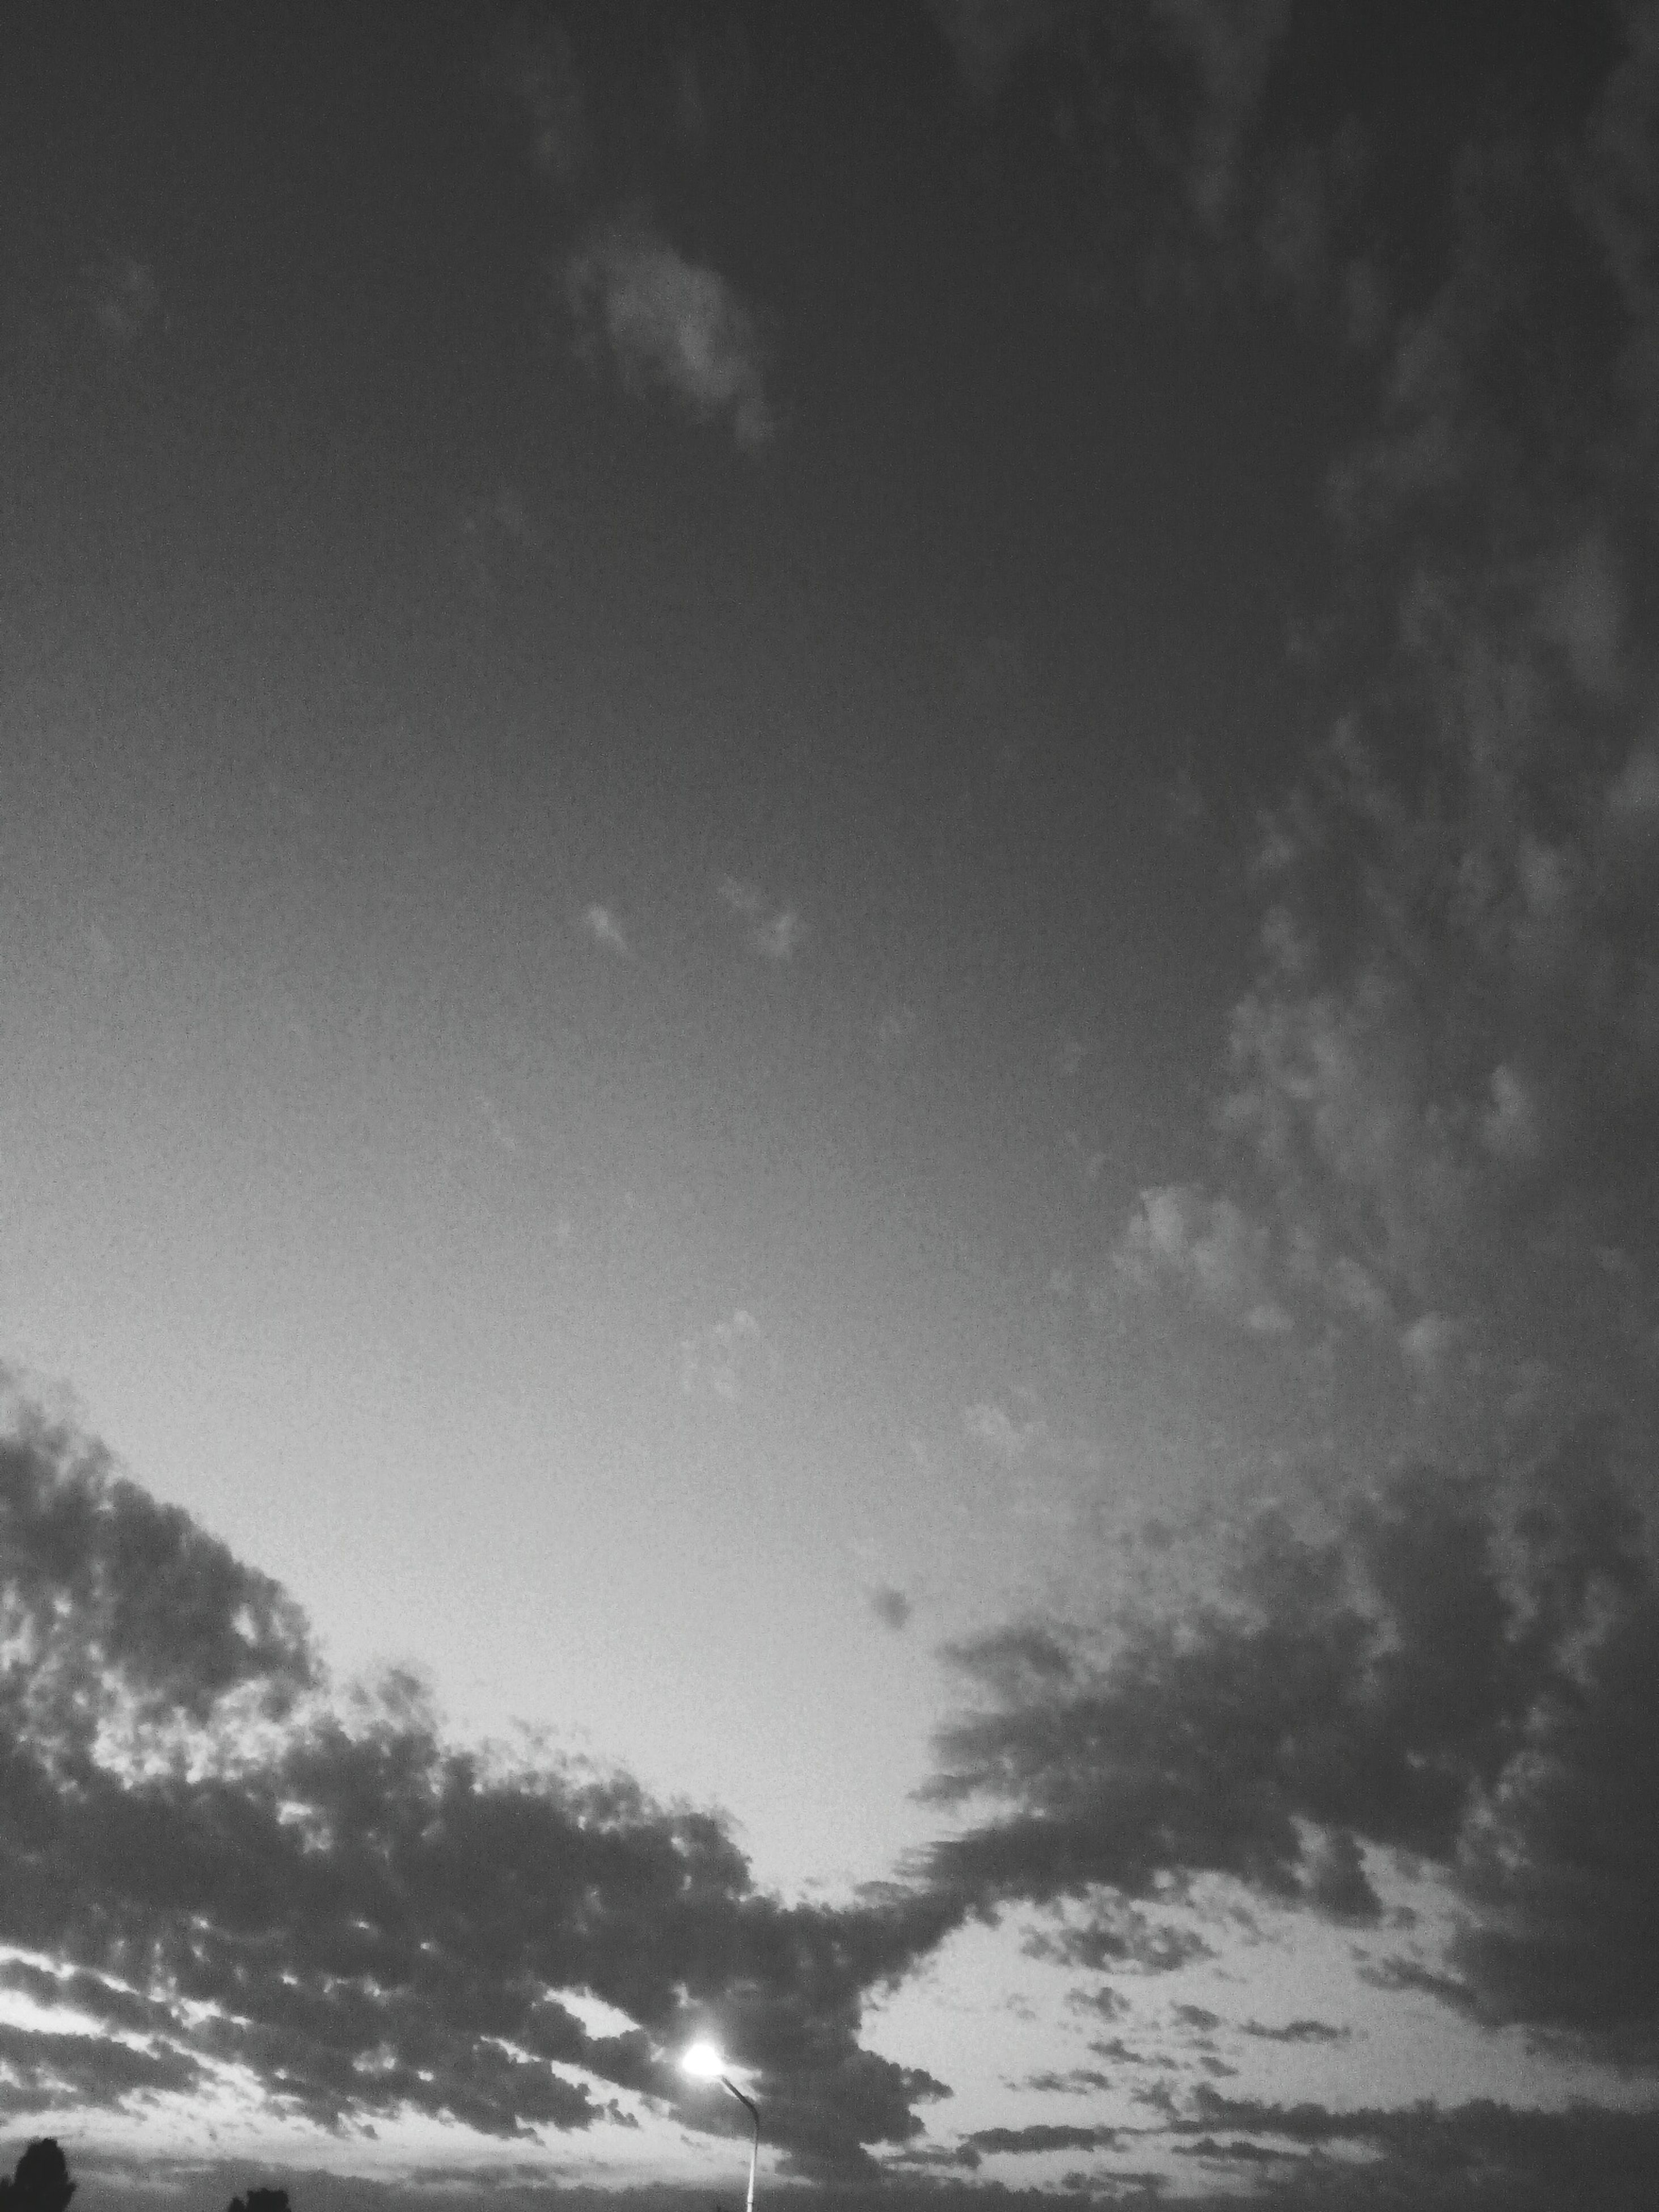 sky, low angle view, nature, no people, beauty in nature, outdoors, scenics, day